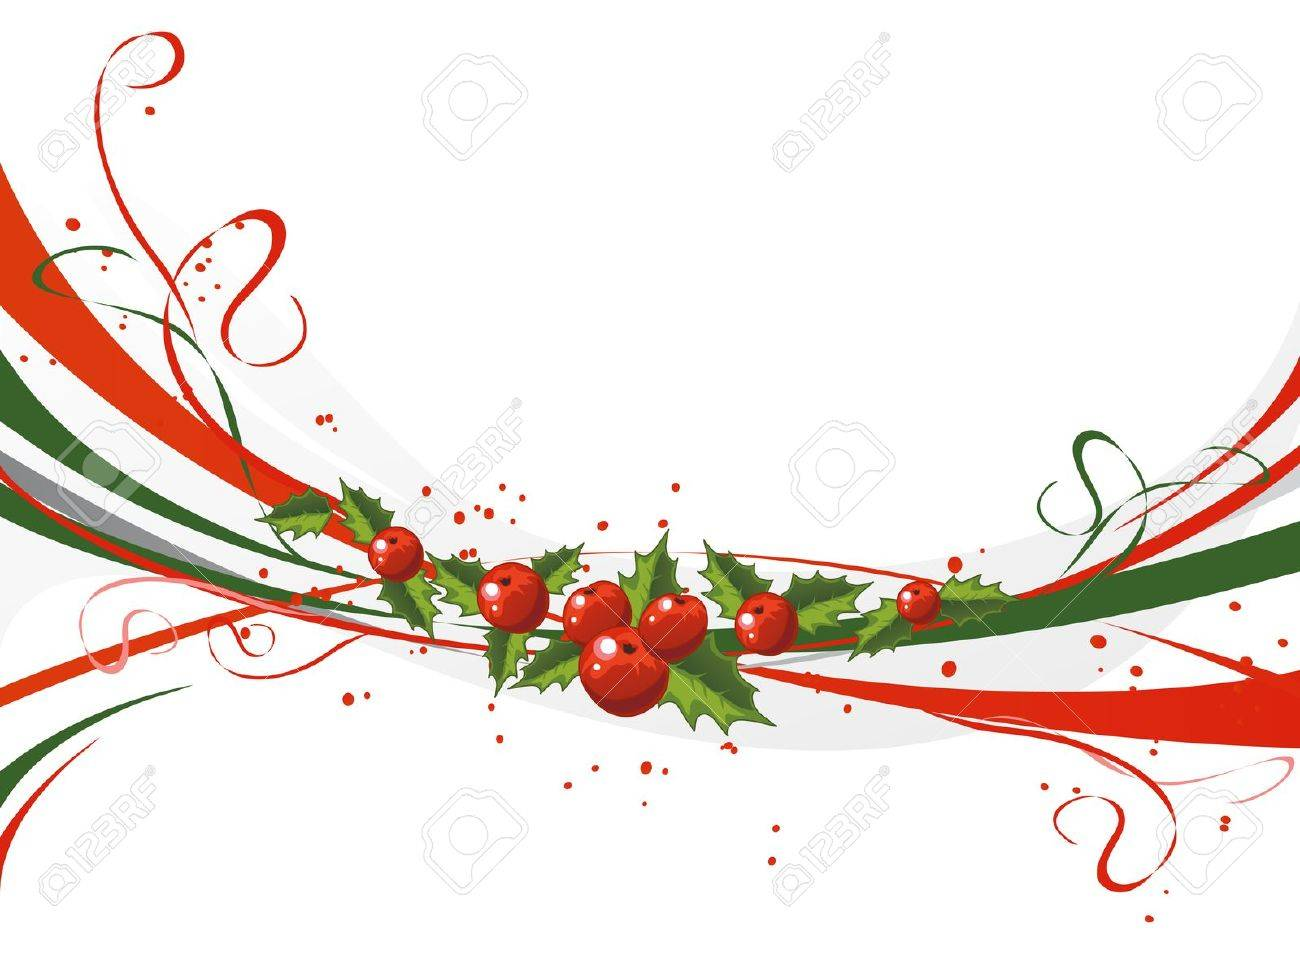 Christmas Design Royalty Free Cliparts, Vectors, And Stock ...